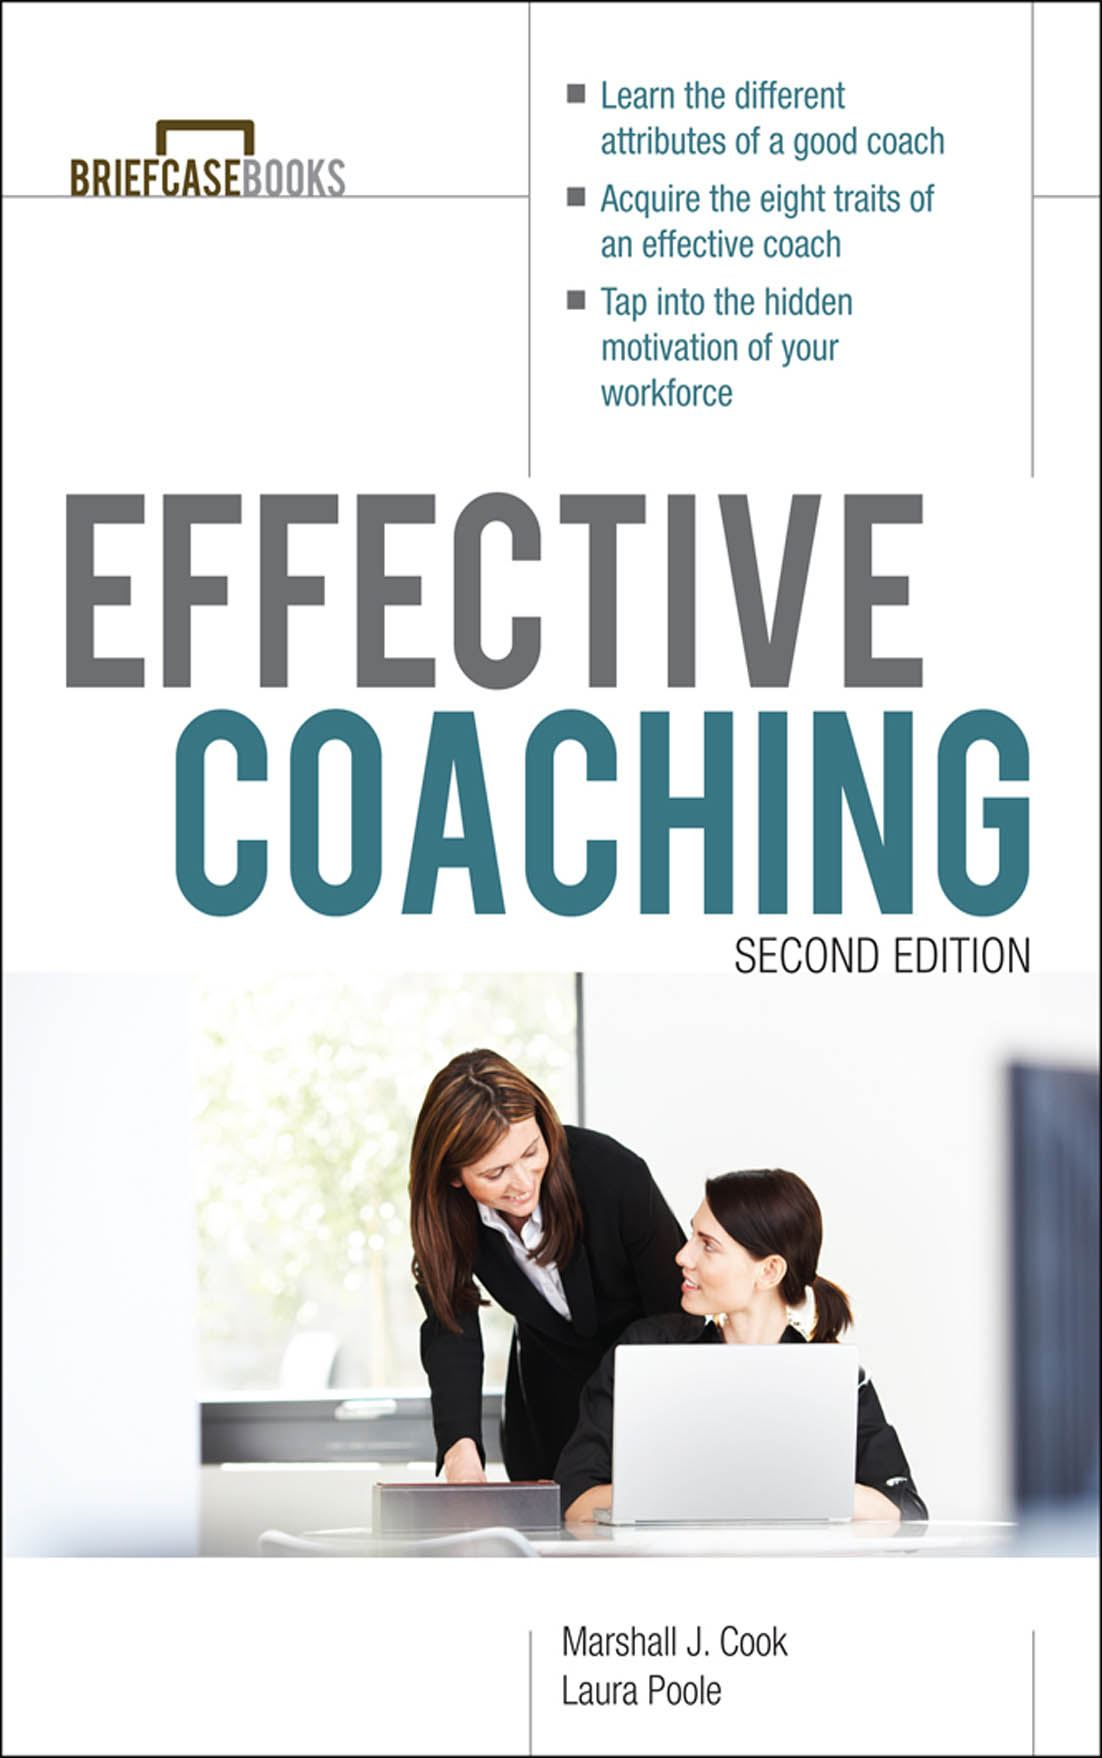 Manager's Guide to Effective Coaching, Second Edition (EBOOK)